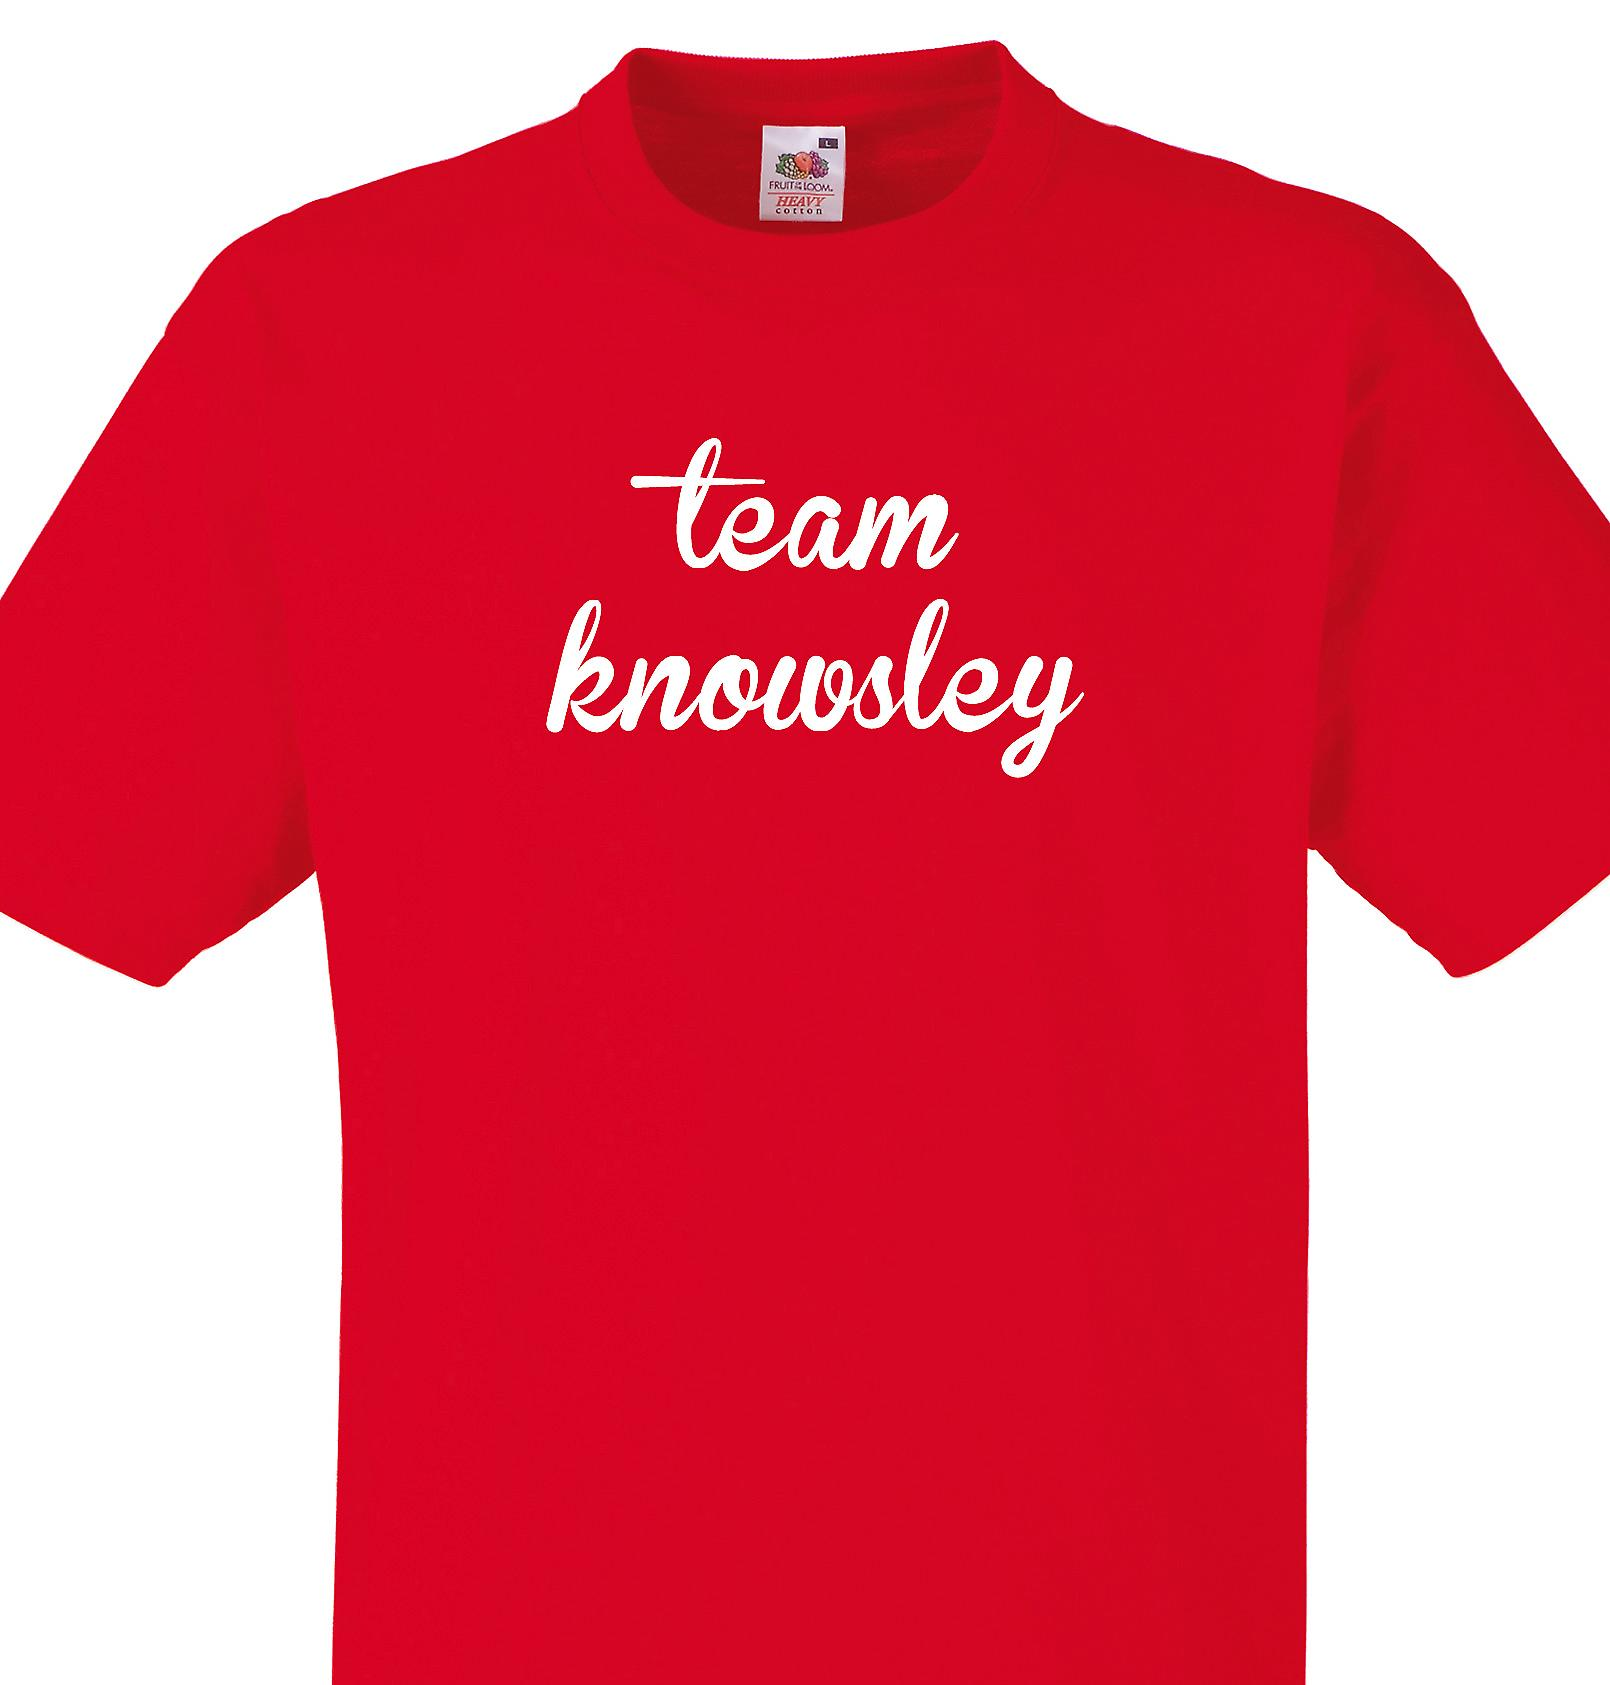 Team Knowsley Red T shirt